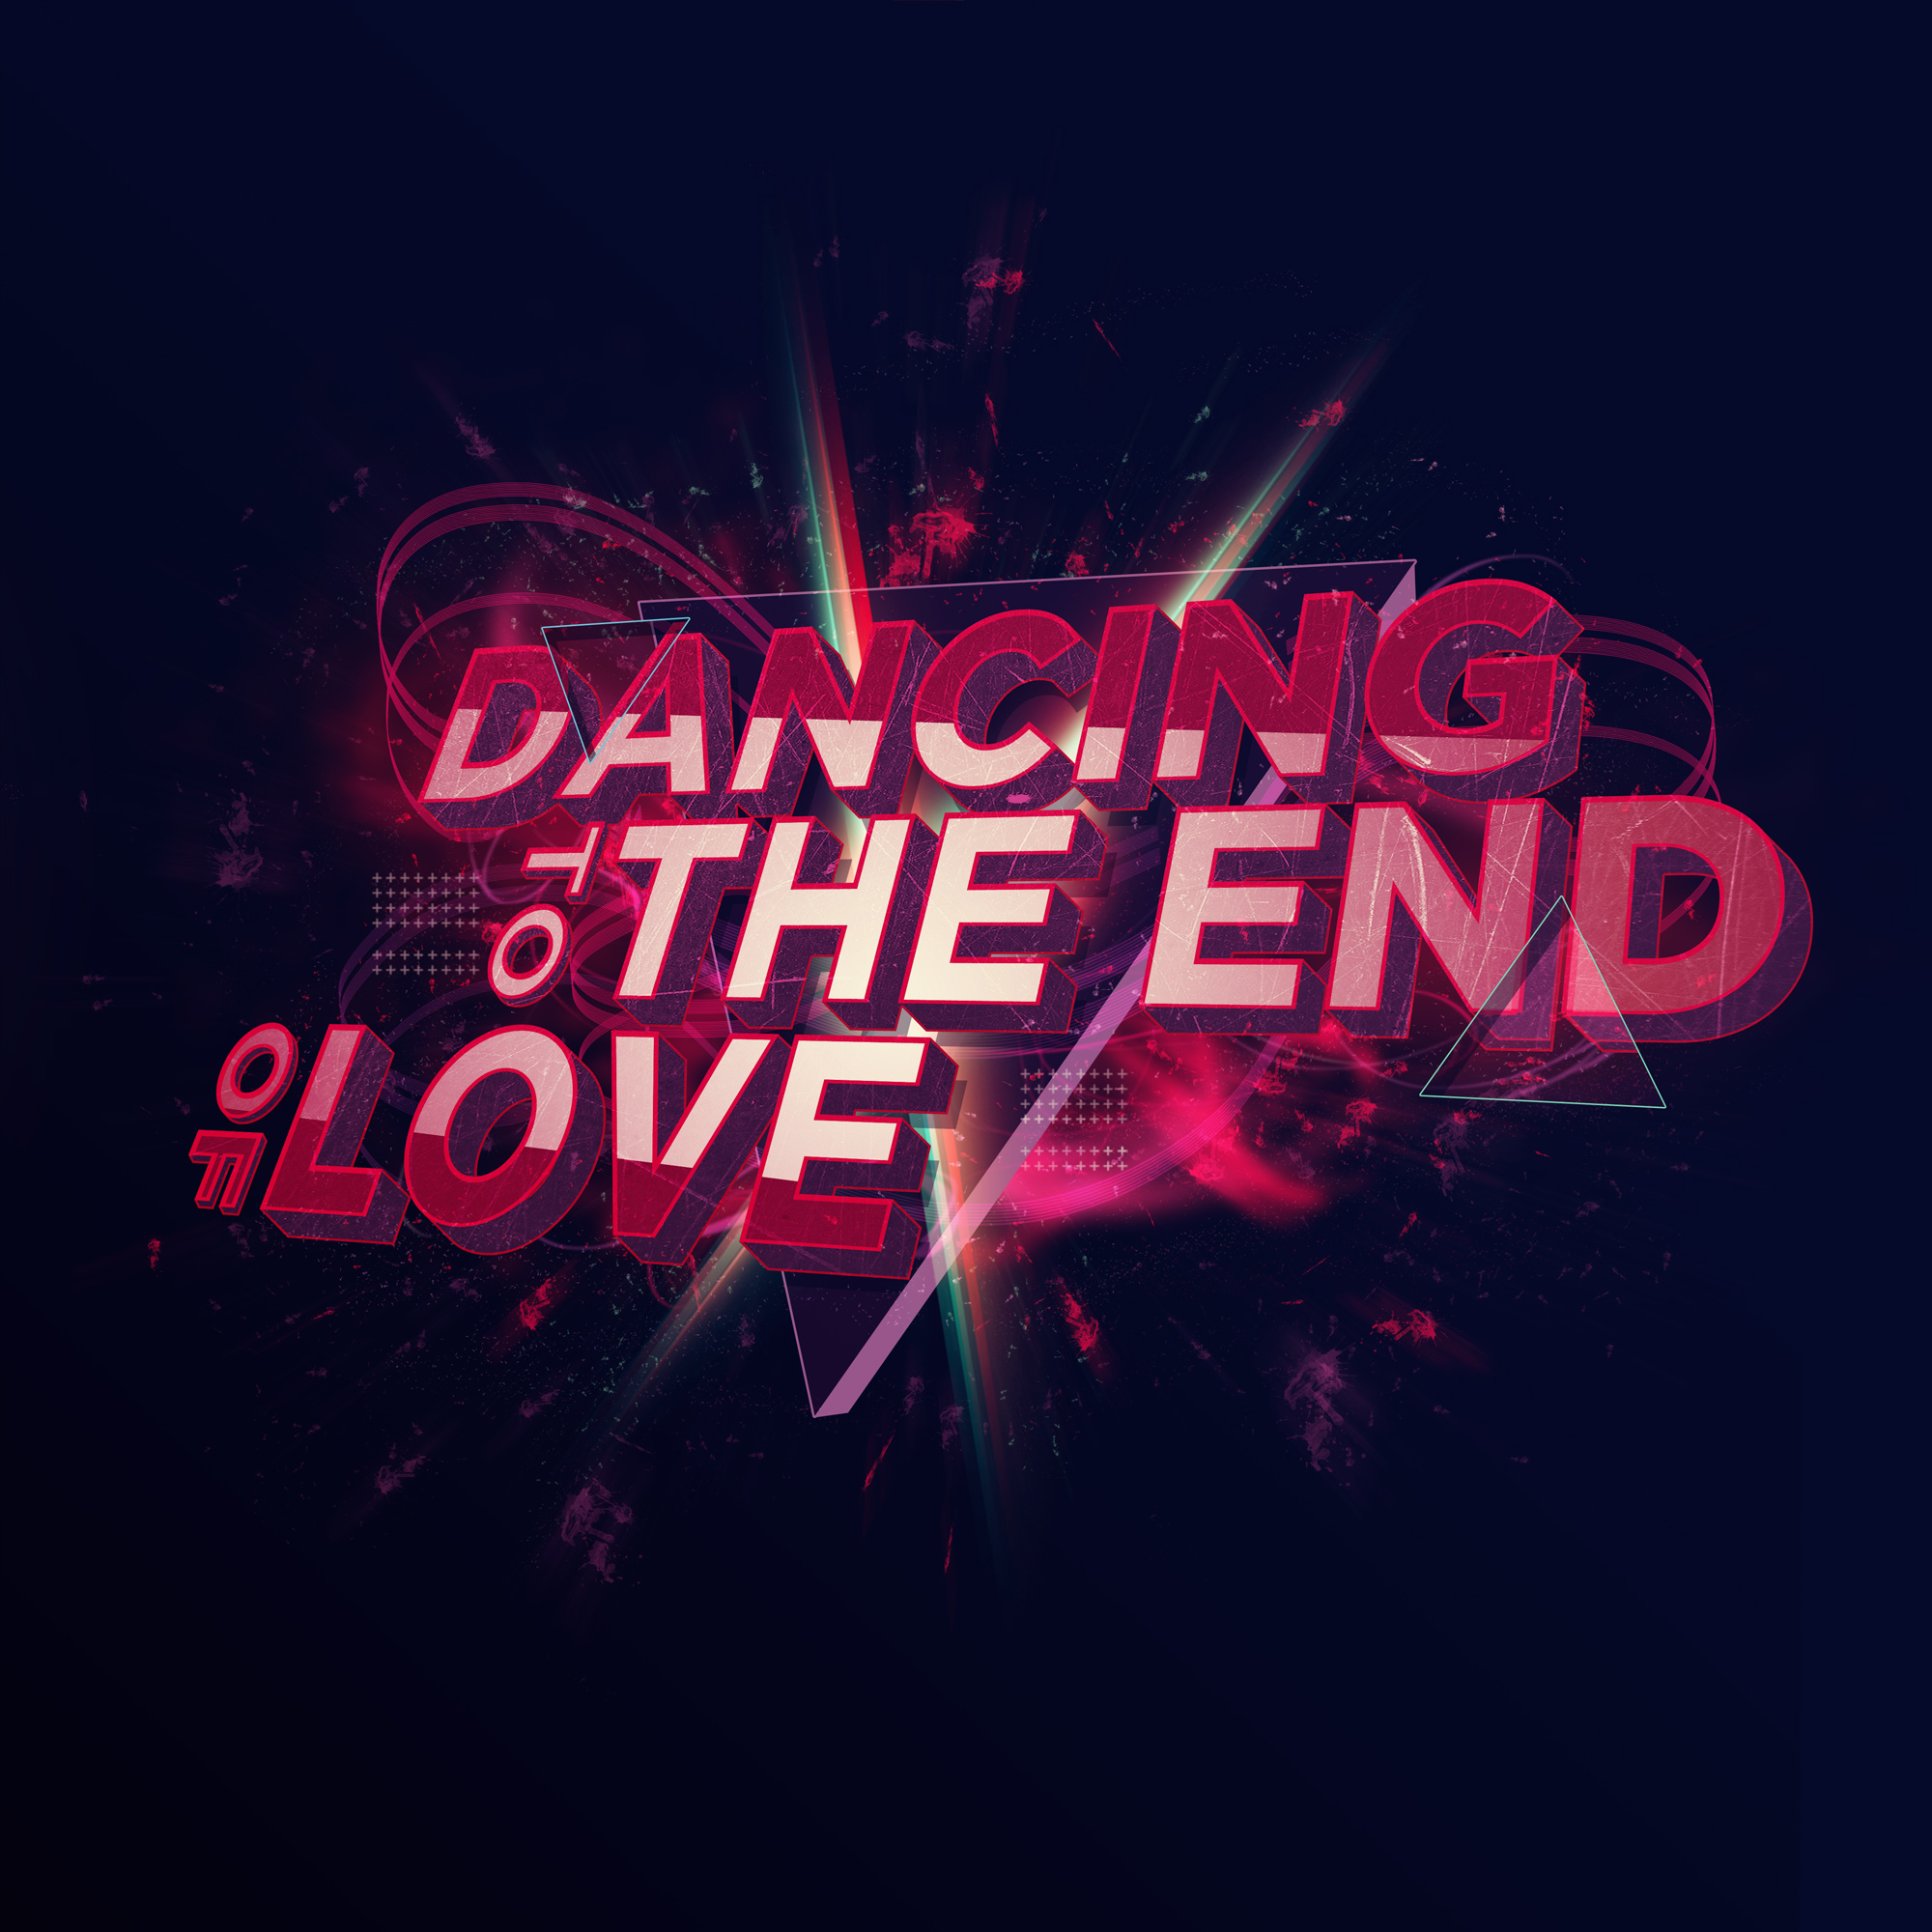 Dancing to the end of love